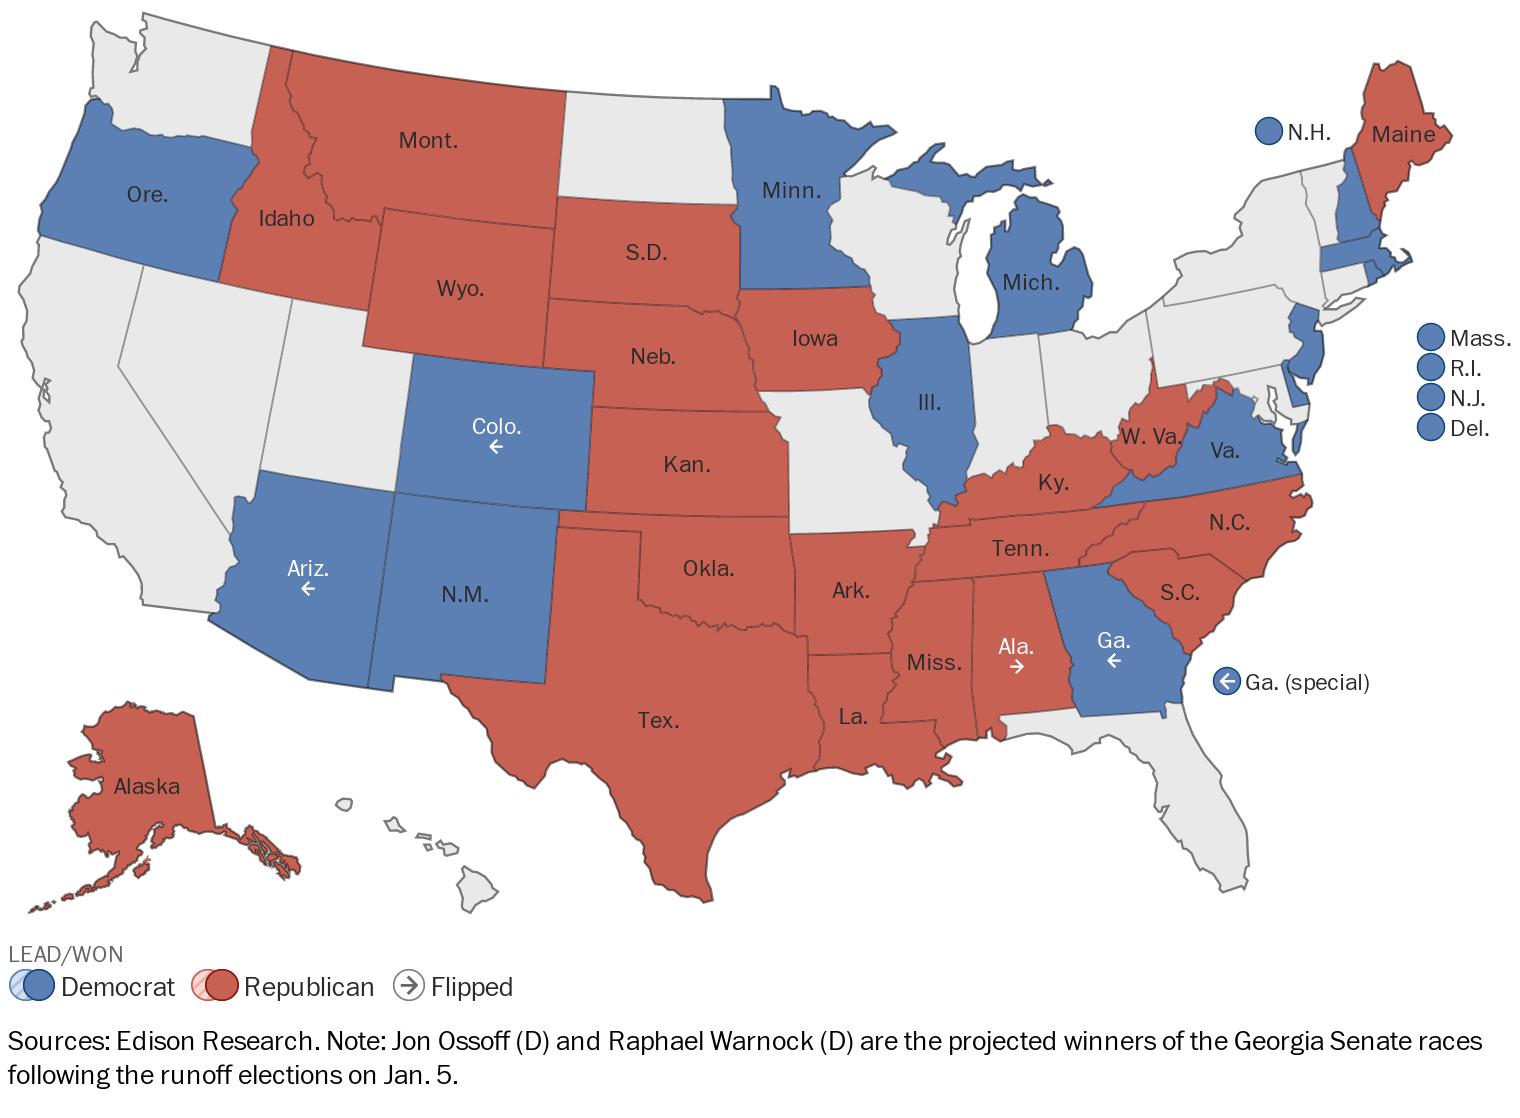 A map showing which party is leading or won the Senate race in each state.